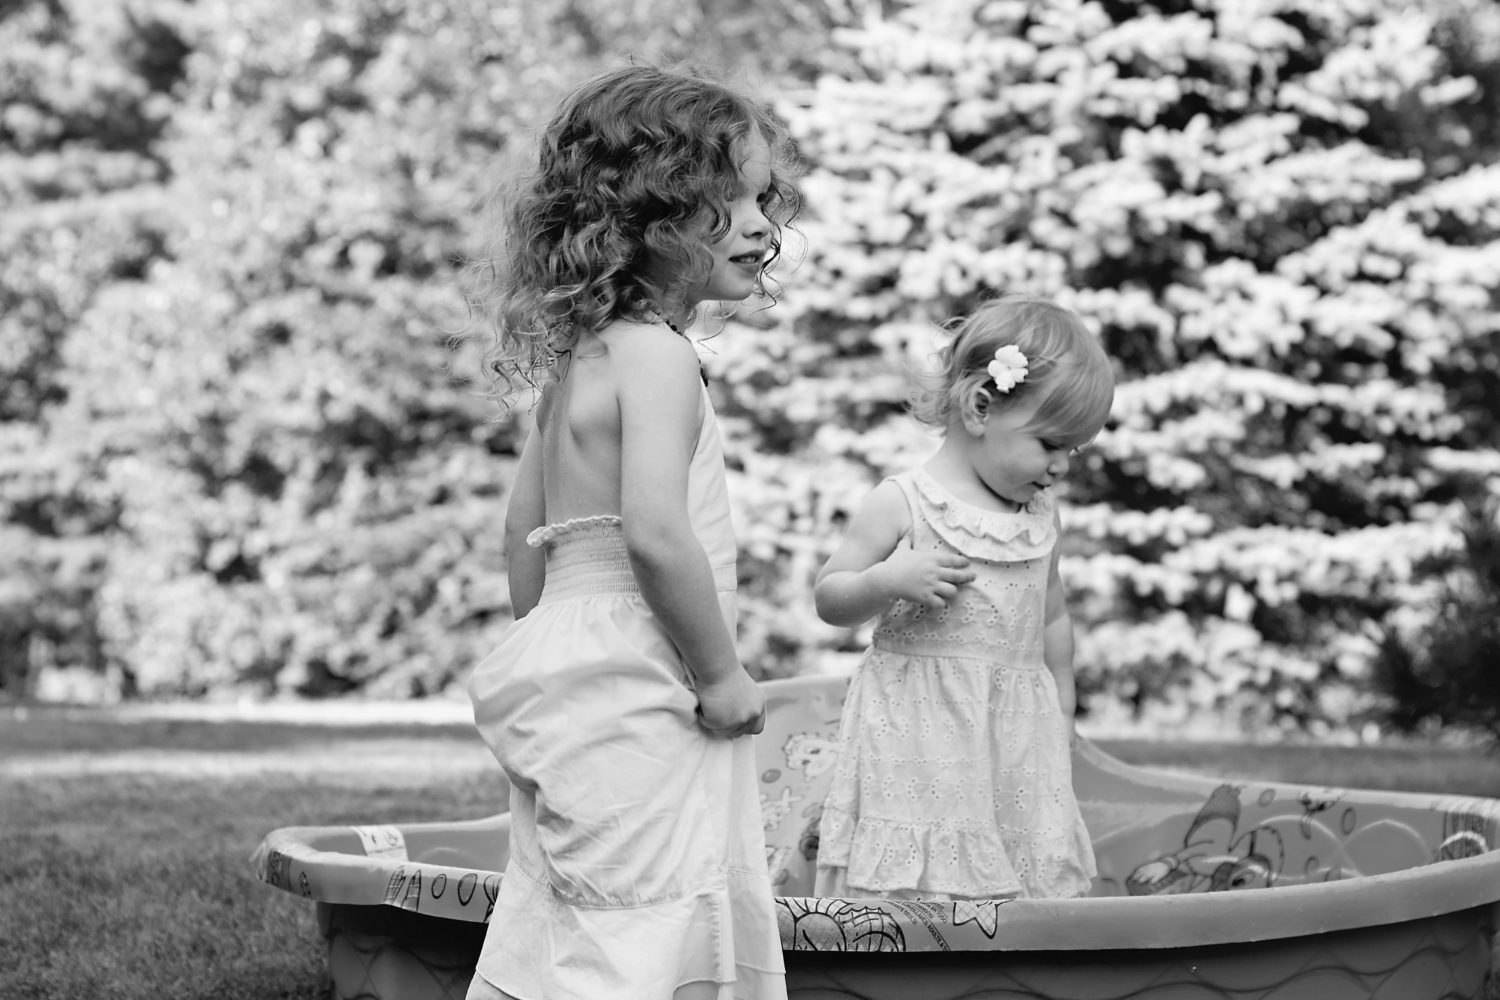 black and white photo of two young girls playing in a wading pool